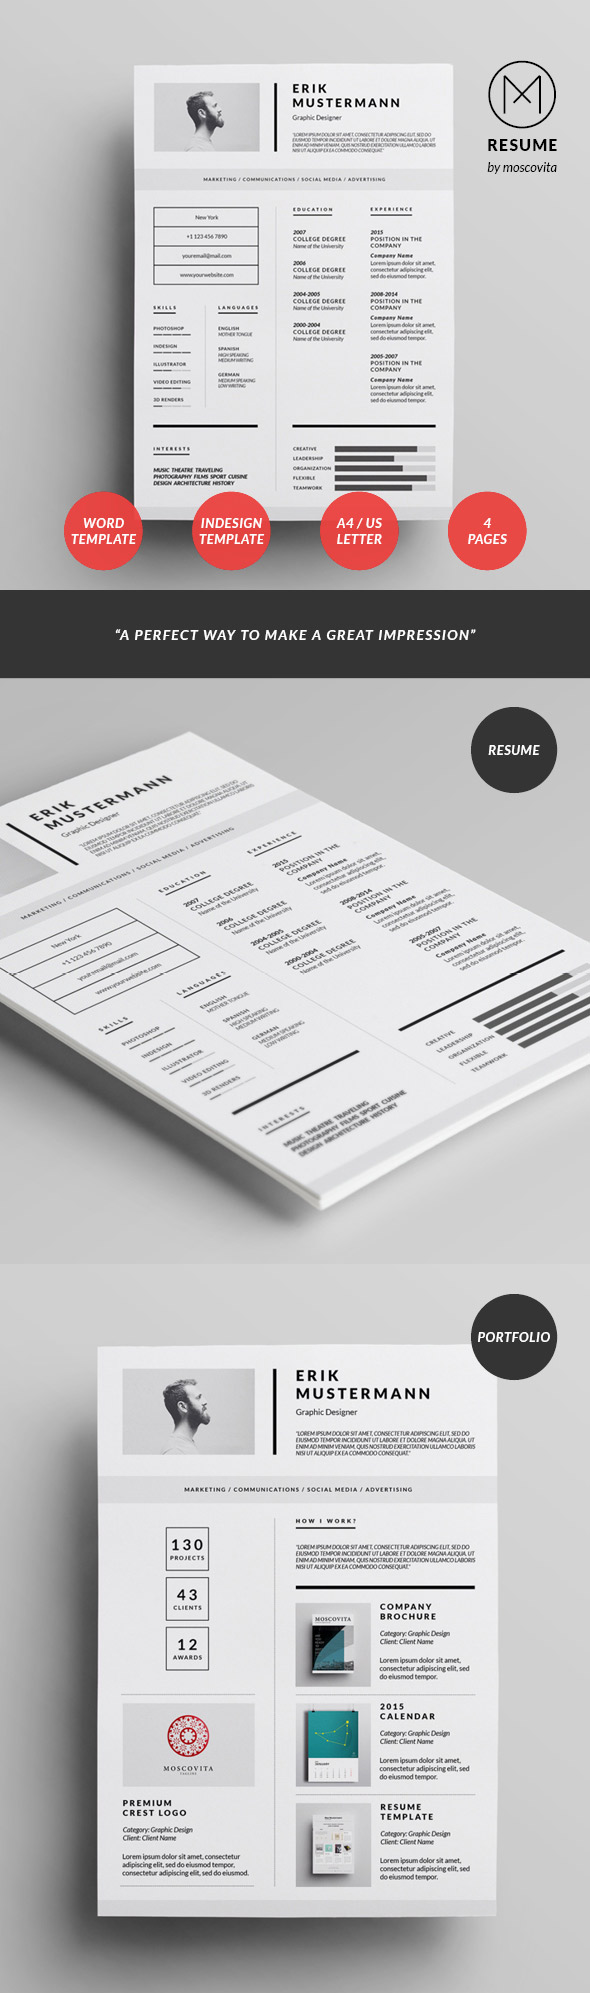 25 creative resume templates to land a new job in style creative modern resume design